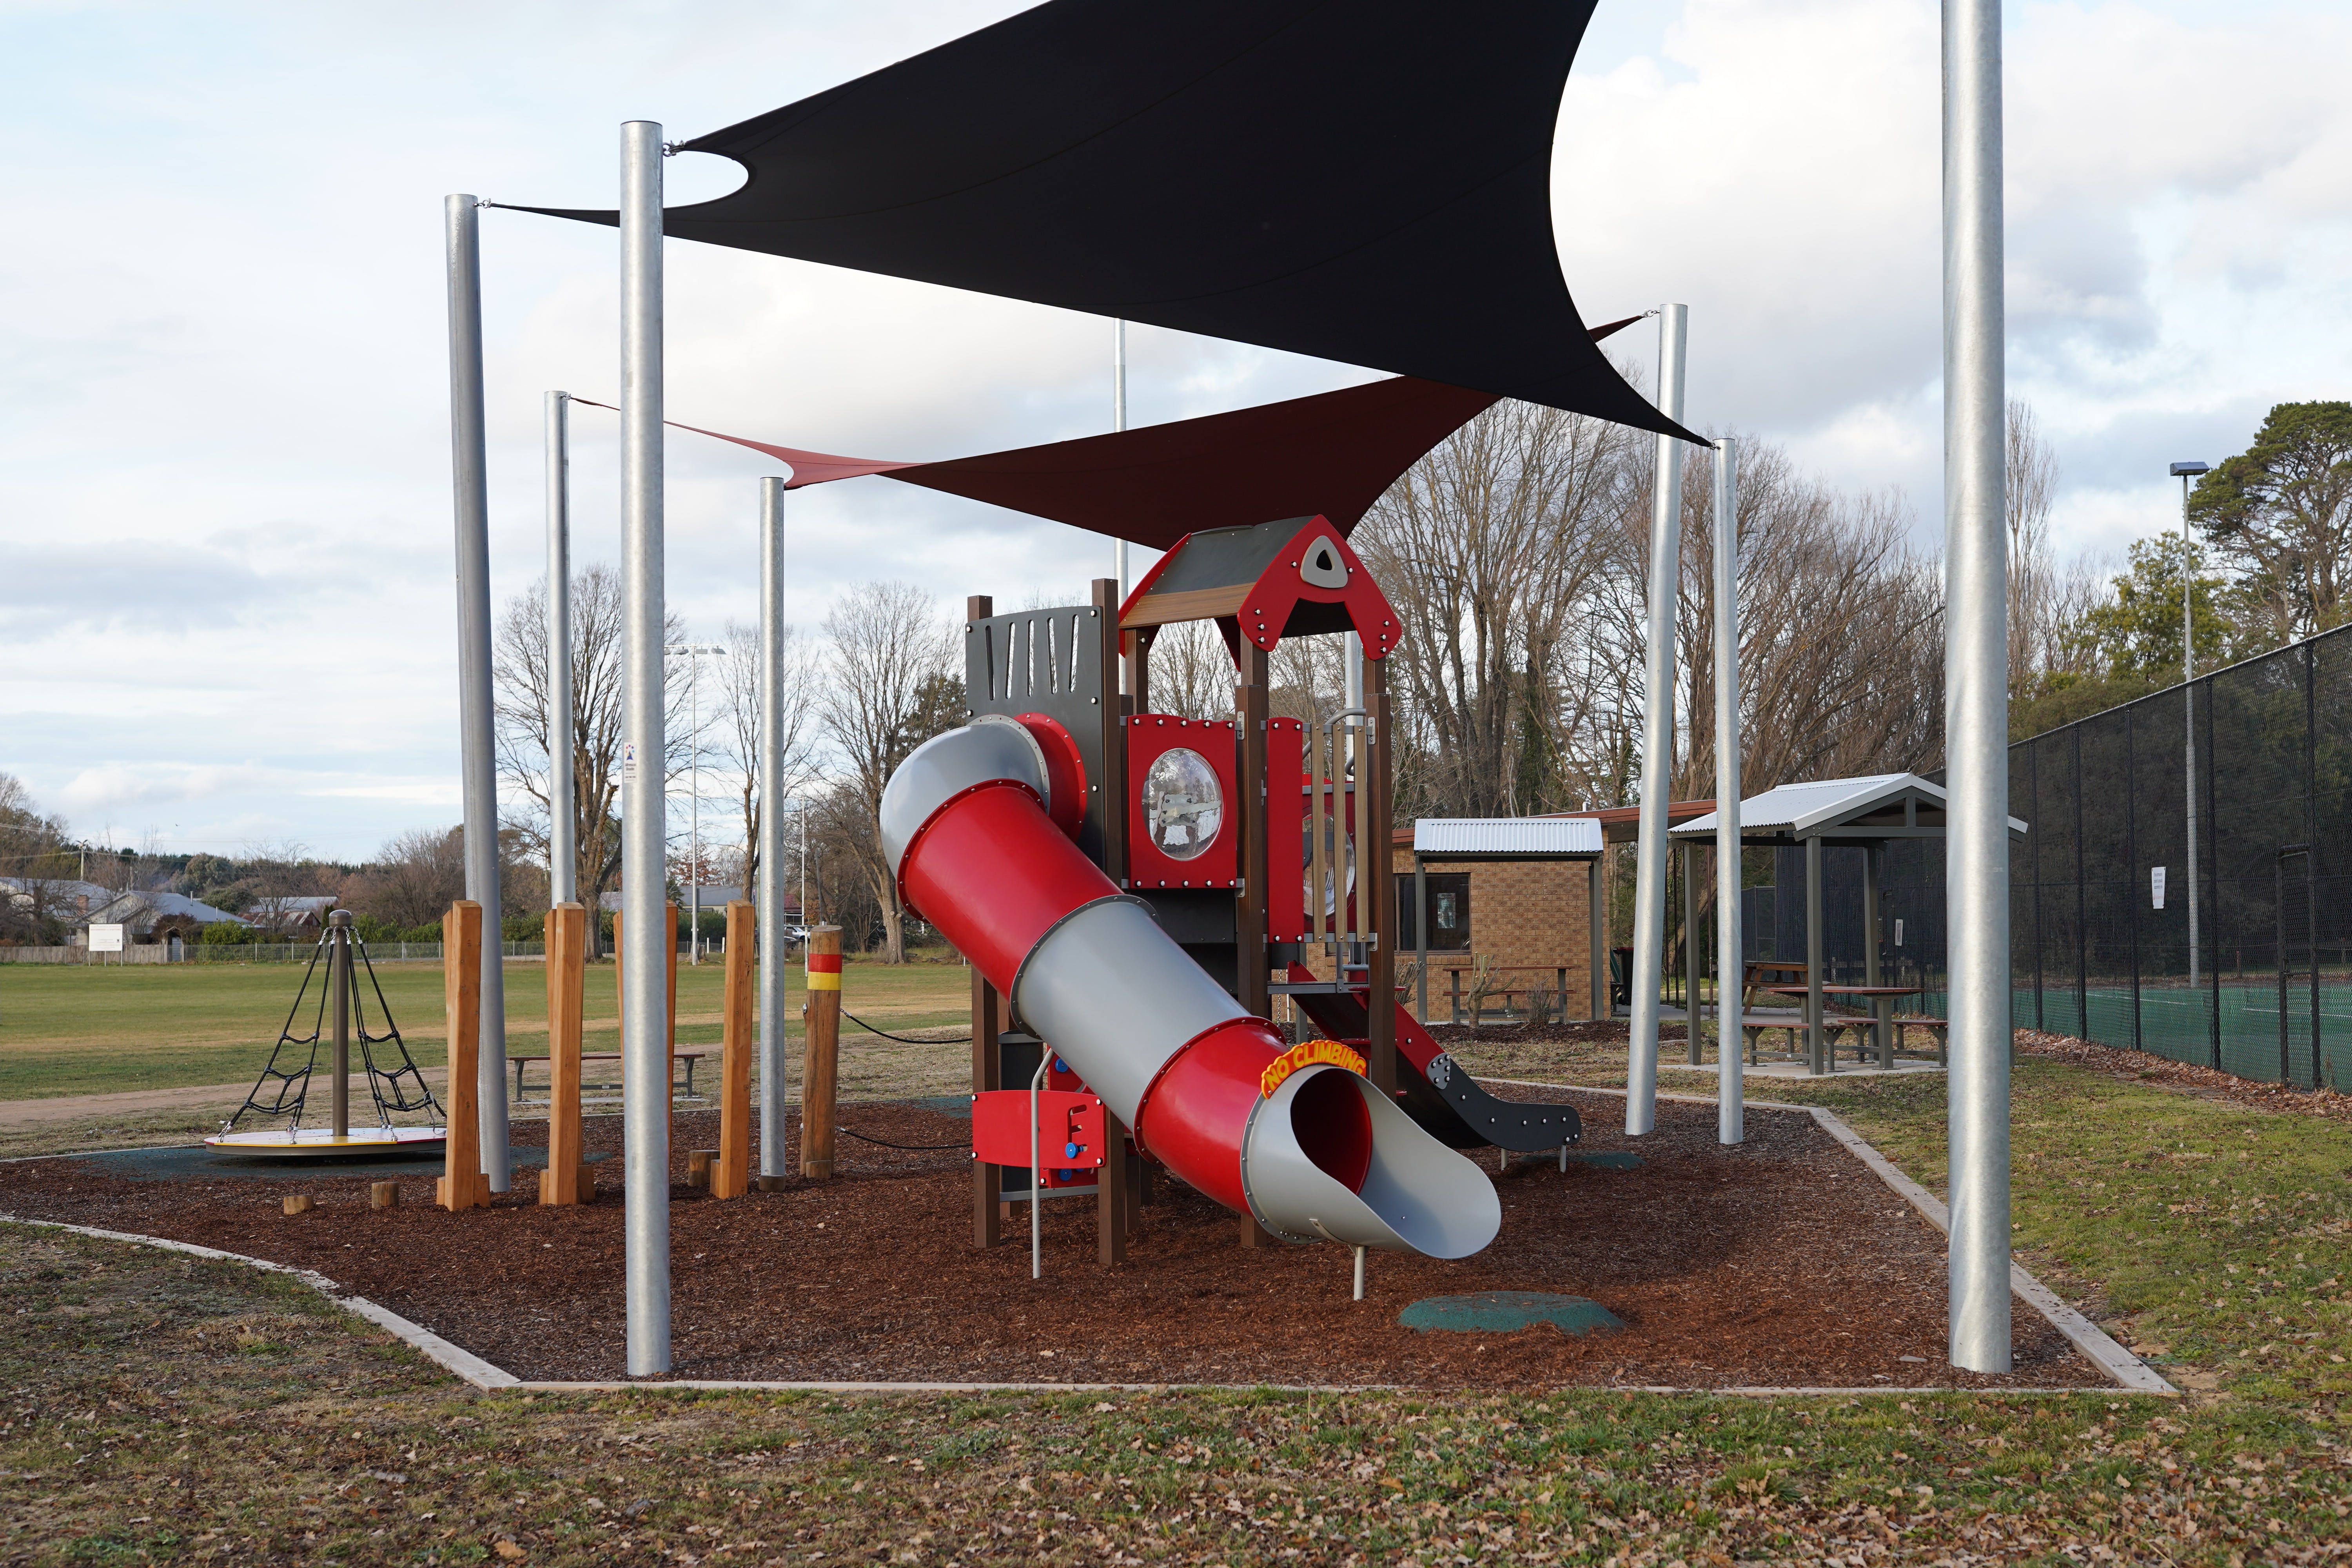 Braidwood Recreation Grounds and Playground - ACT Tourism